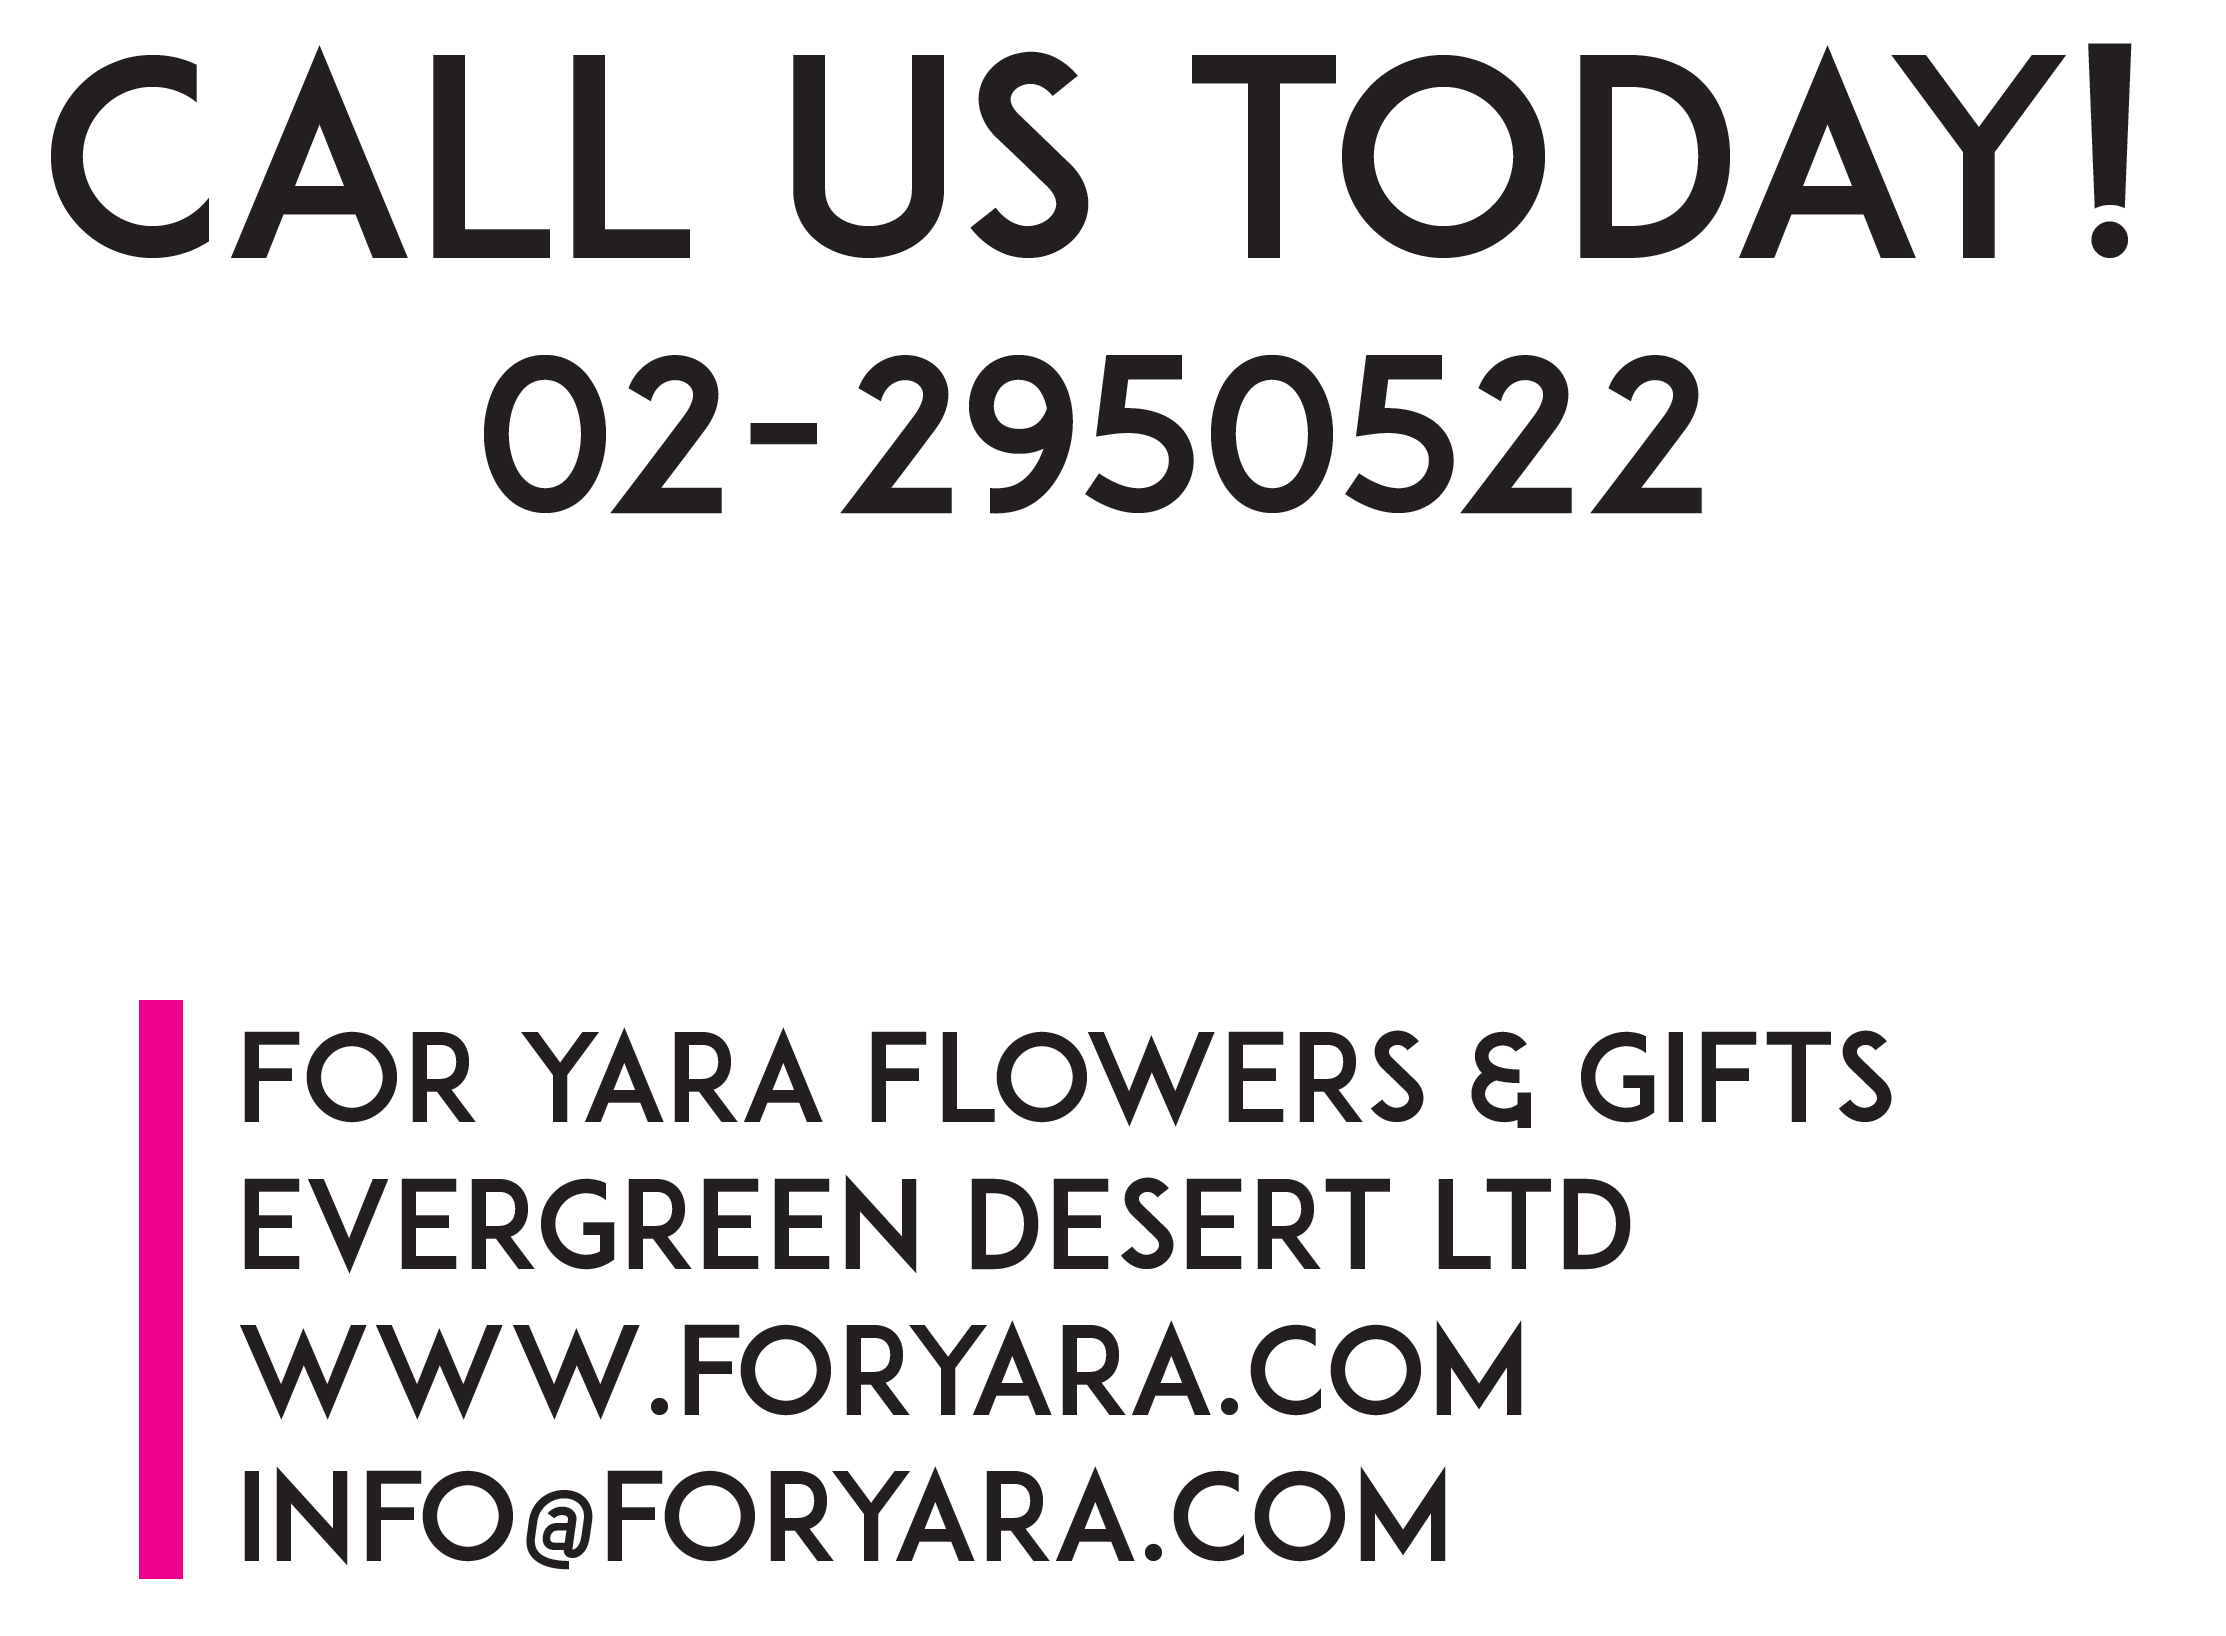 Contact for Yara Flowers and Gifts